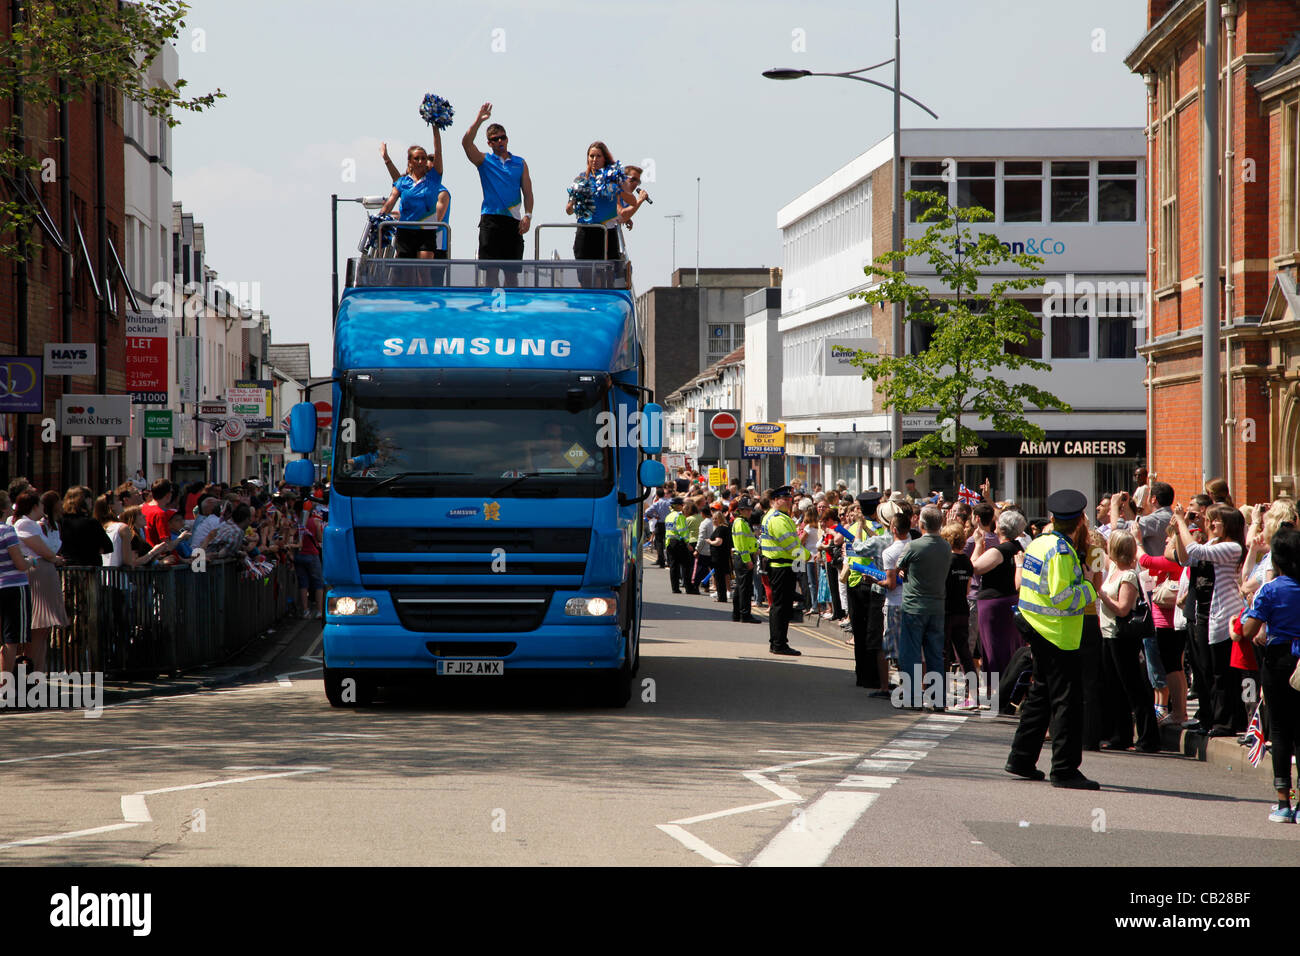 Wednesday, May 23rd 2012.  Swindon, Wiltshire, England, UK. The Samsung coach signals the imminent arrival of the - Stock Image